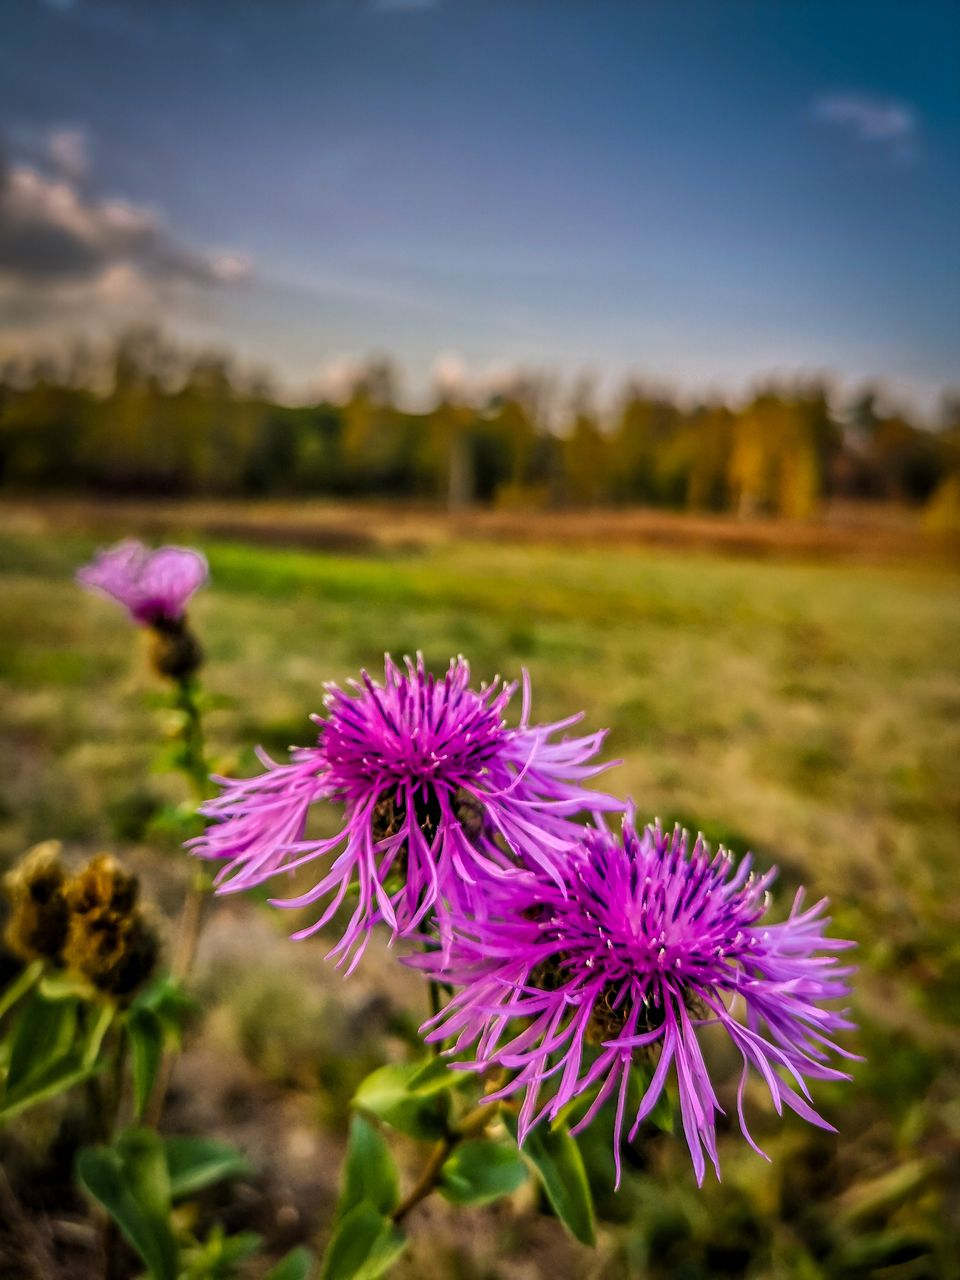 Mal ein bisschen Farbe in den grauen Alltag bringen. Wünsche eich eine gute Nacht und ein entspannten Dienstag 😊🌃 Autumn Autumn colors Flower Head Sky Scenics Scenics - Nature Nature_collection Tranquil Scene Beauty In Nature Tranquility Tree Nature Day Outdoors Landscape Harzlandschaft Flower Head Flower Thistle Flowerbed Summer Crocus Rural Scene Purple Field Springtime In Bloom Wildflower Coneflower Pollen Market Trends: Winter Food My Best Photo Market Trends: Winter Food Picture Your Community Market Trend: Shopping & Quick Payments Market Trends: Grandmothers & Grandfathers Picture The Decade Market Trends: Pregnancy & New Borns Picture The Decade